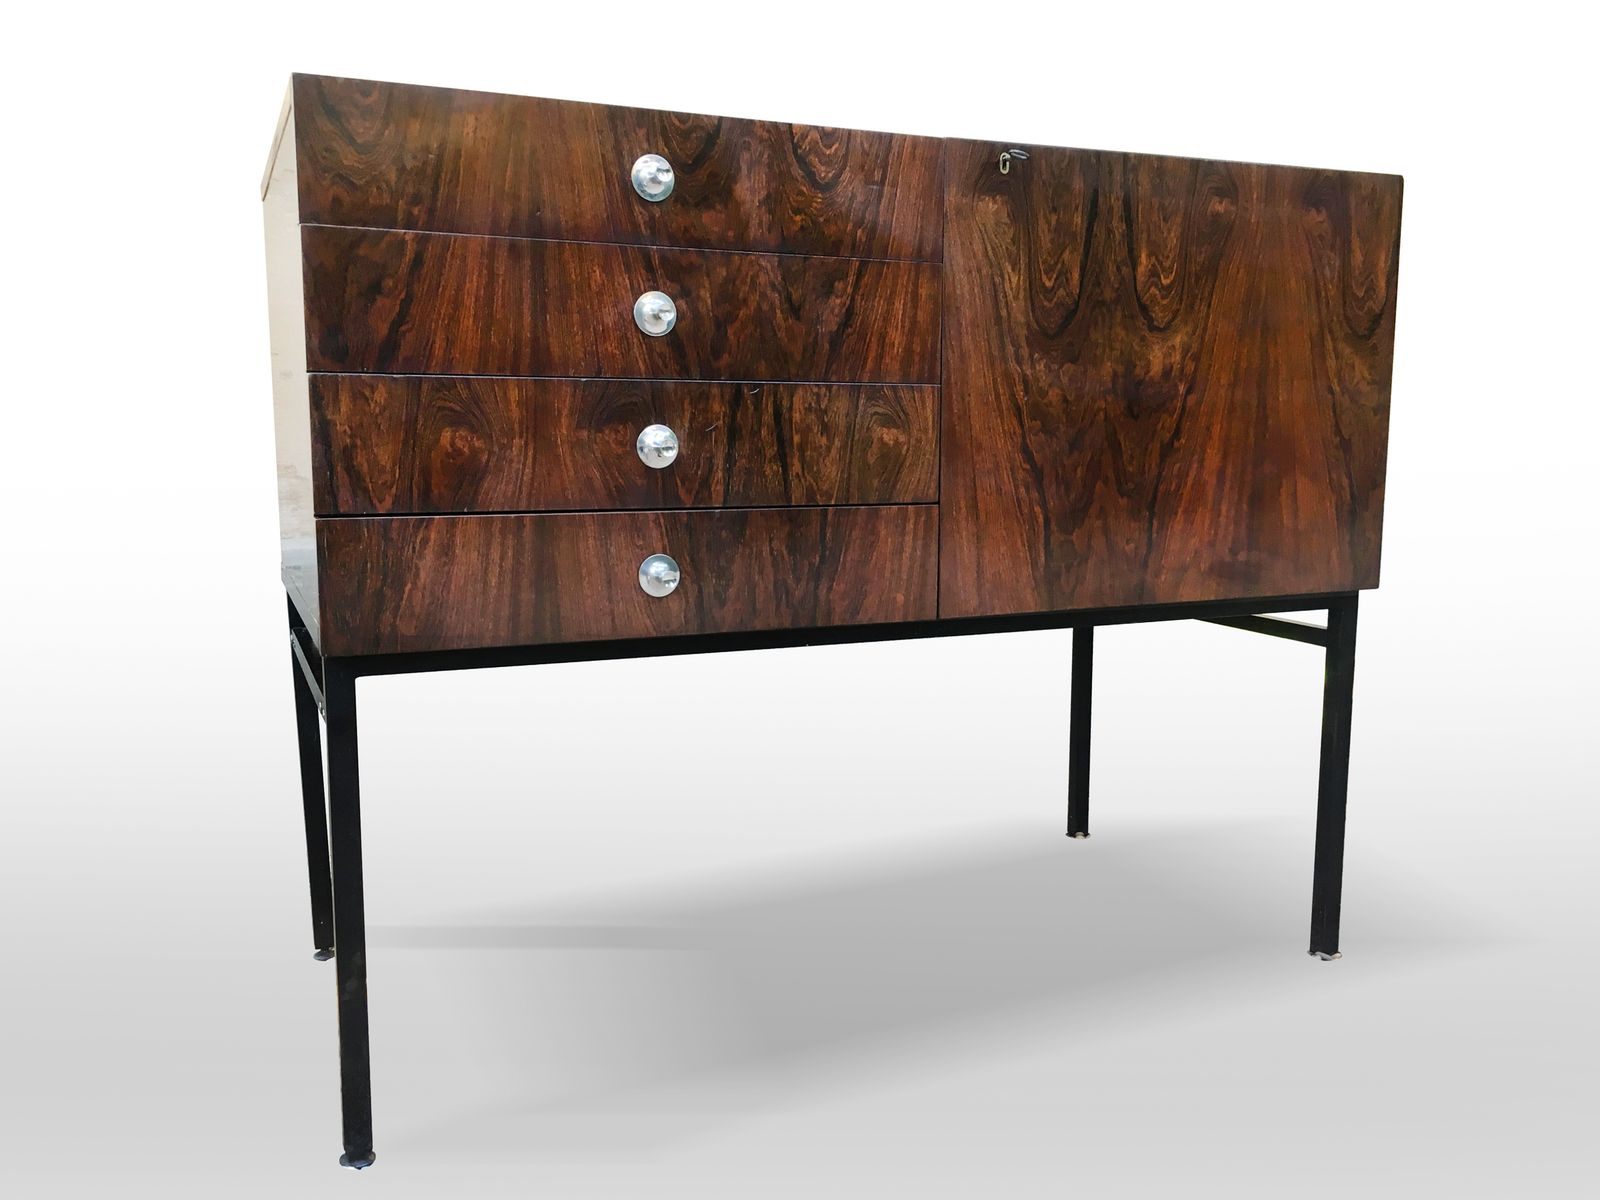 Vintage sideboard 800 by alain richard for meubles tv for for Ameublement retro